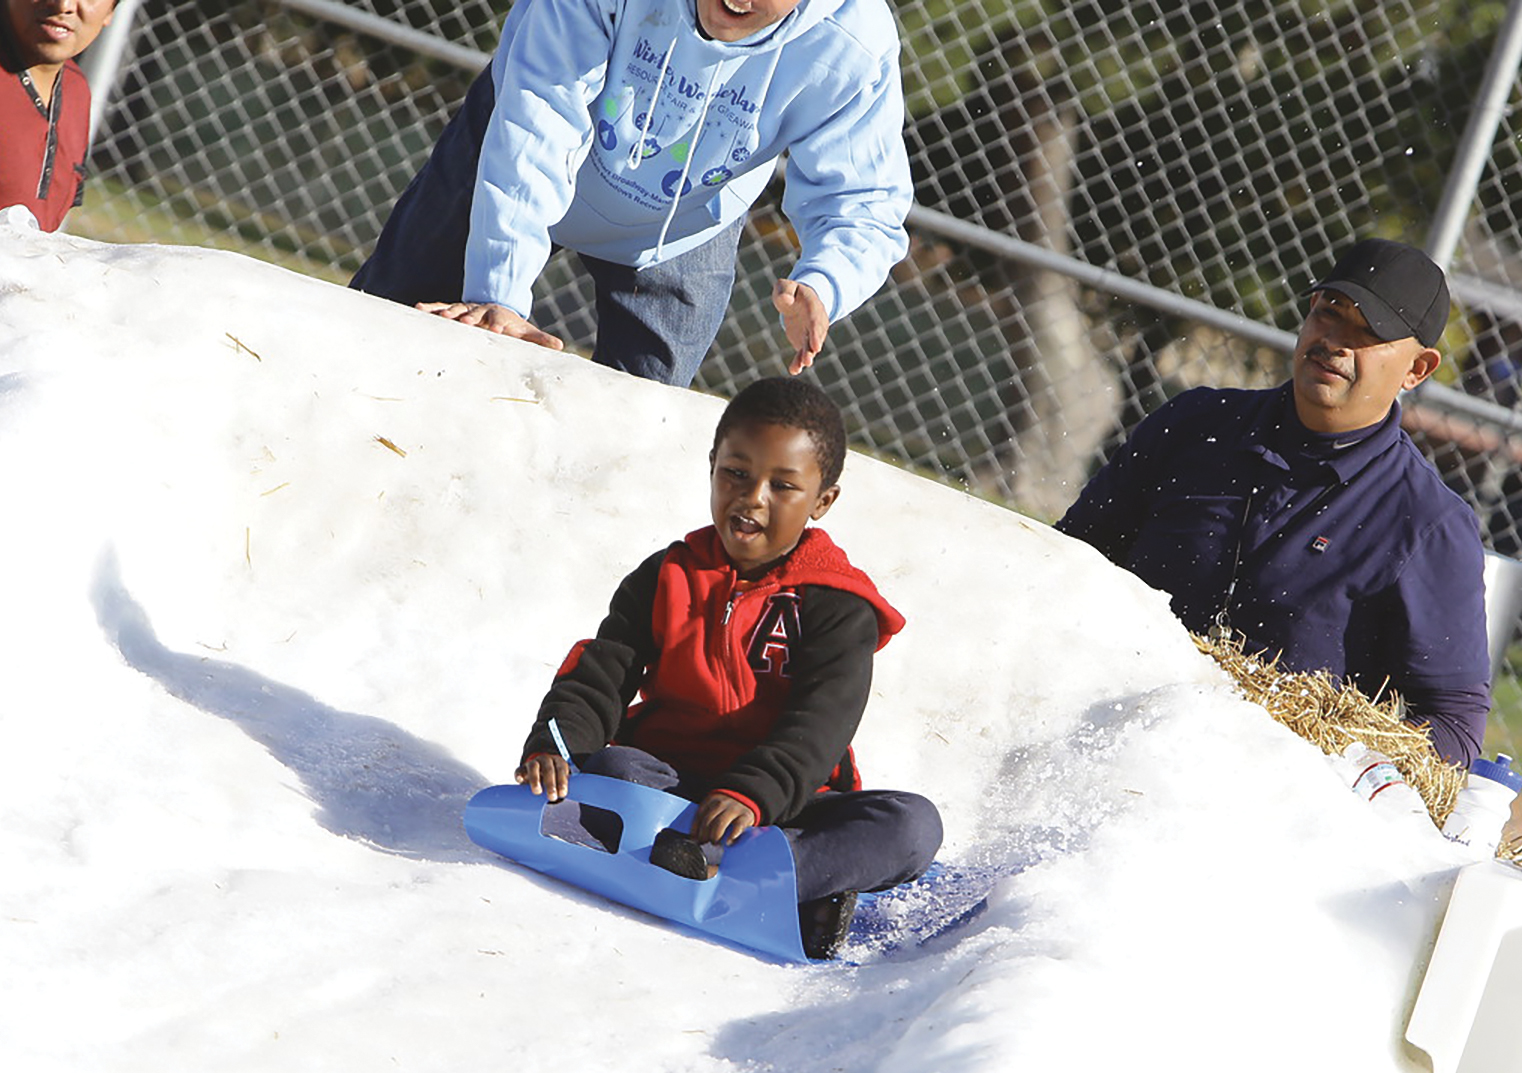 """Best Start Broadway-Manchester and Green Meadows Recreation Hosted """"Winter Wonderland- Resource Fair and Toy Giveaway"""" pic 3.jpg"""